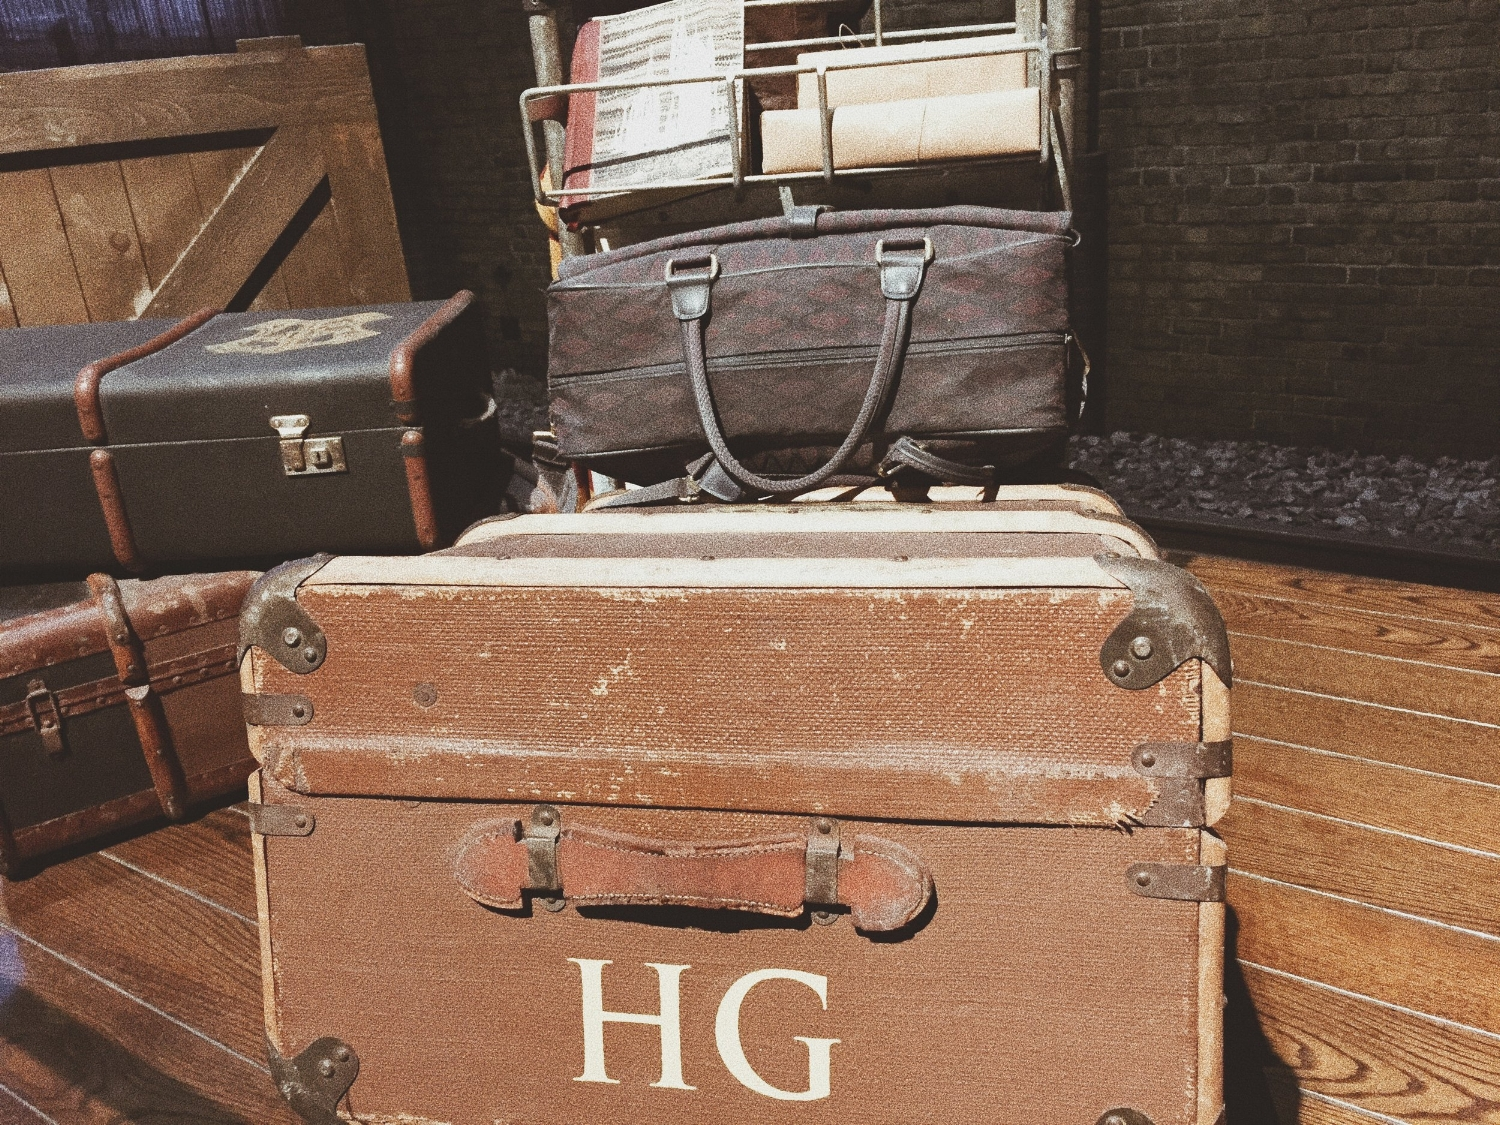 Hermione Granger's luggage